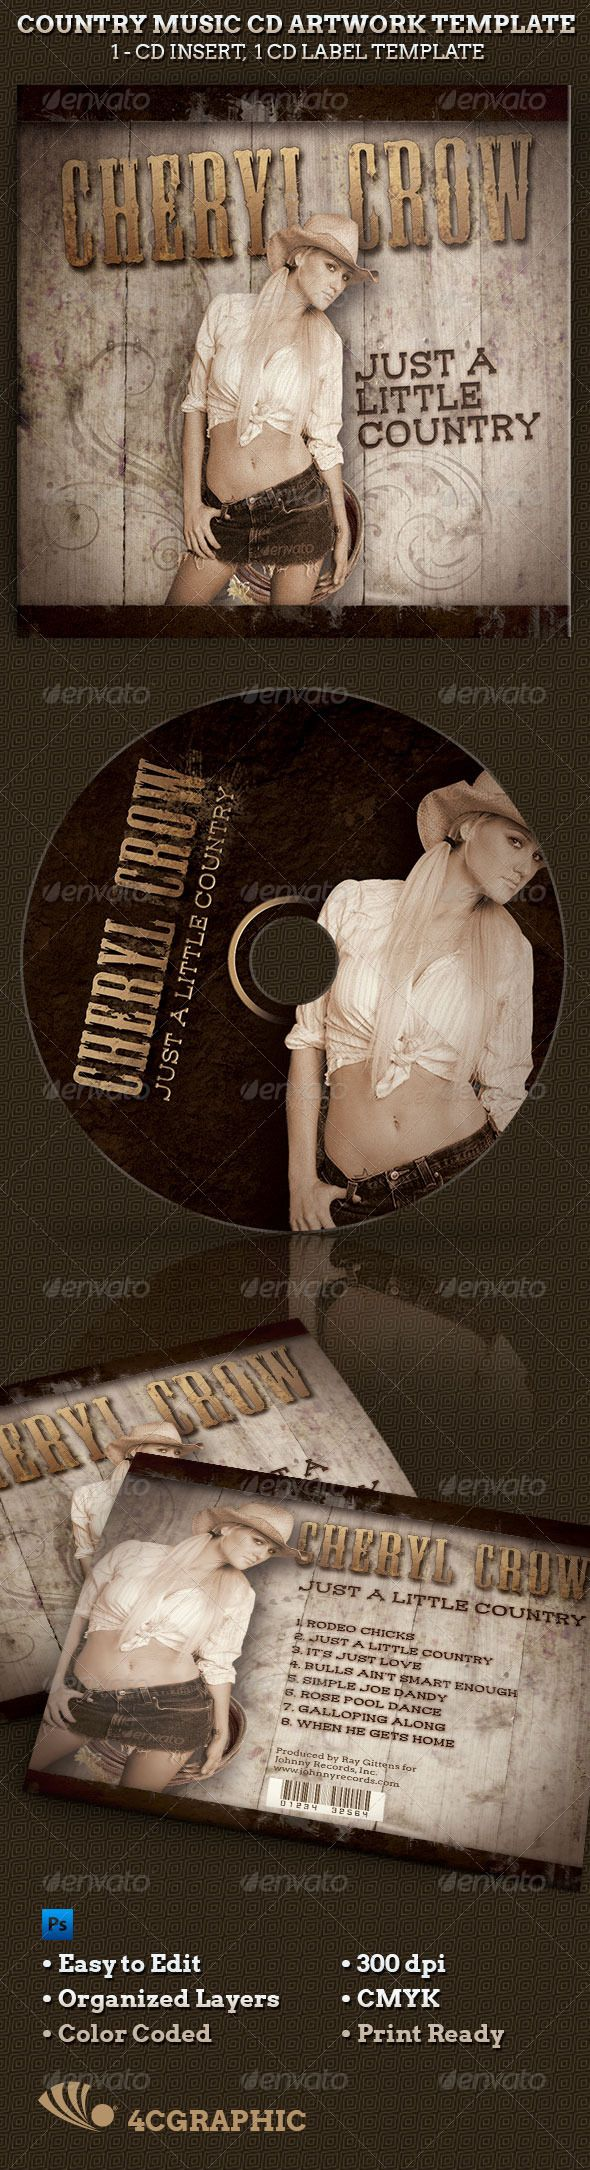 Country Western Music CD Artwork Template - $5.00 The Country Western Music CD Artwork Template is great for any western or country theme music compilation. In this package you'll find 3 Photoshop files. 4 One-Click color options are included. All layers are arranged, color coded and simple to edit. Sold exclusively on graphicriver.net